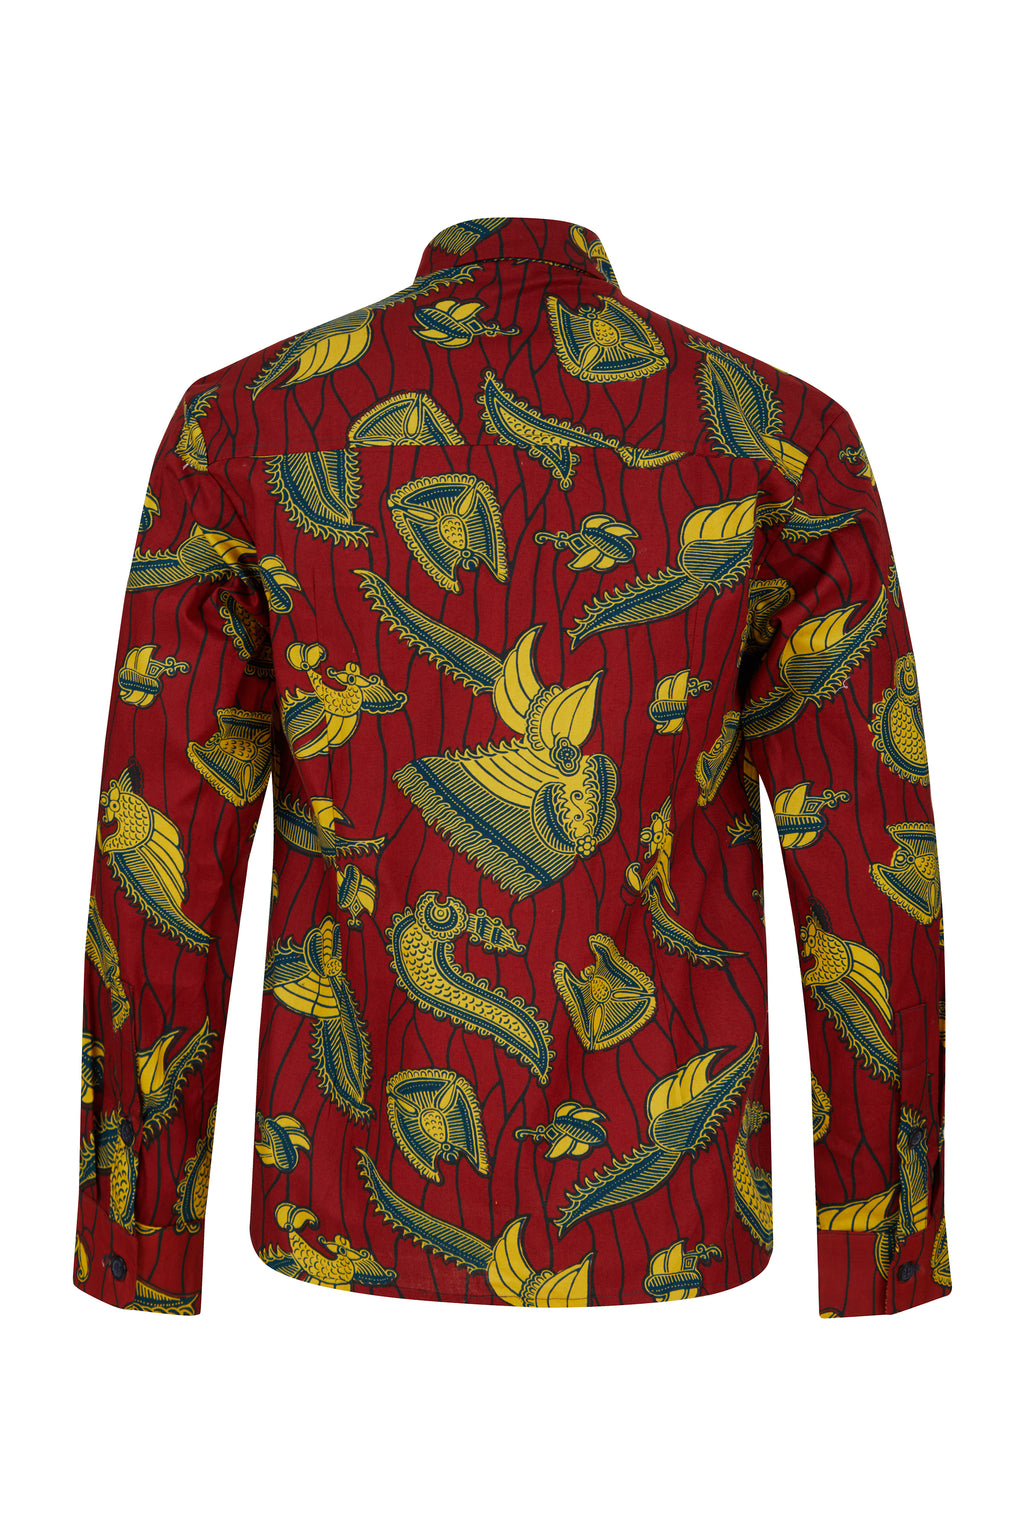 Asante Long sleeve African print shirt- Golden Goose